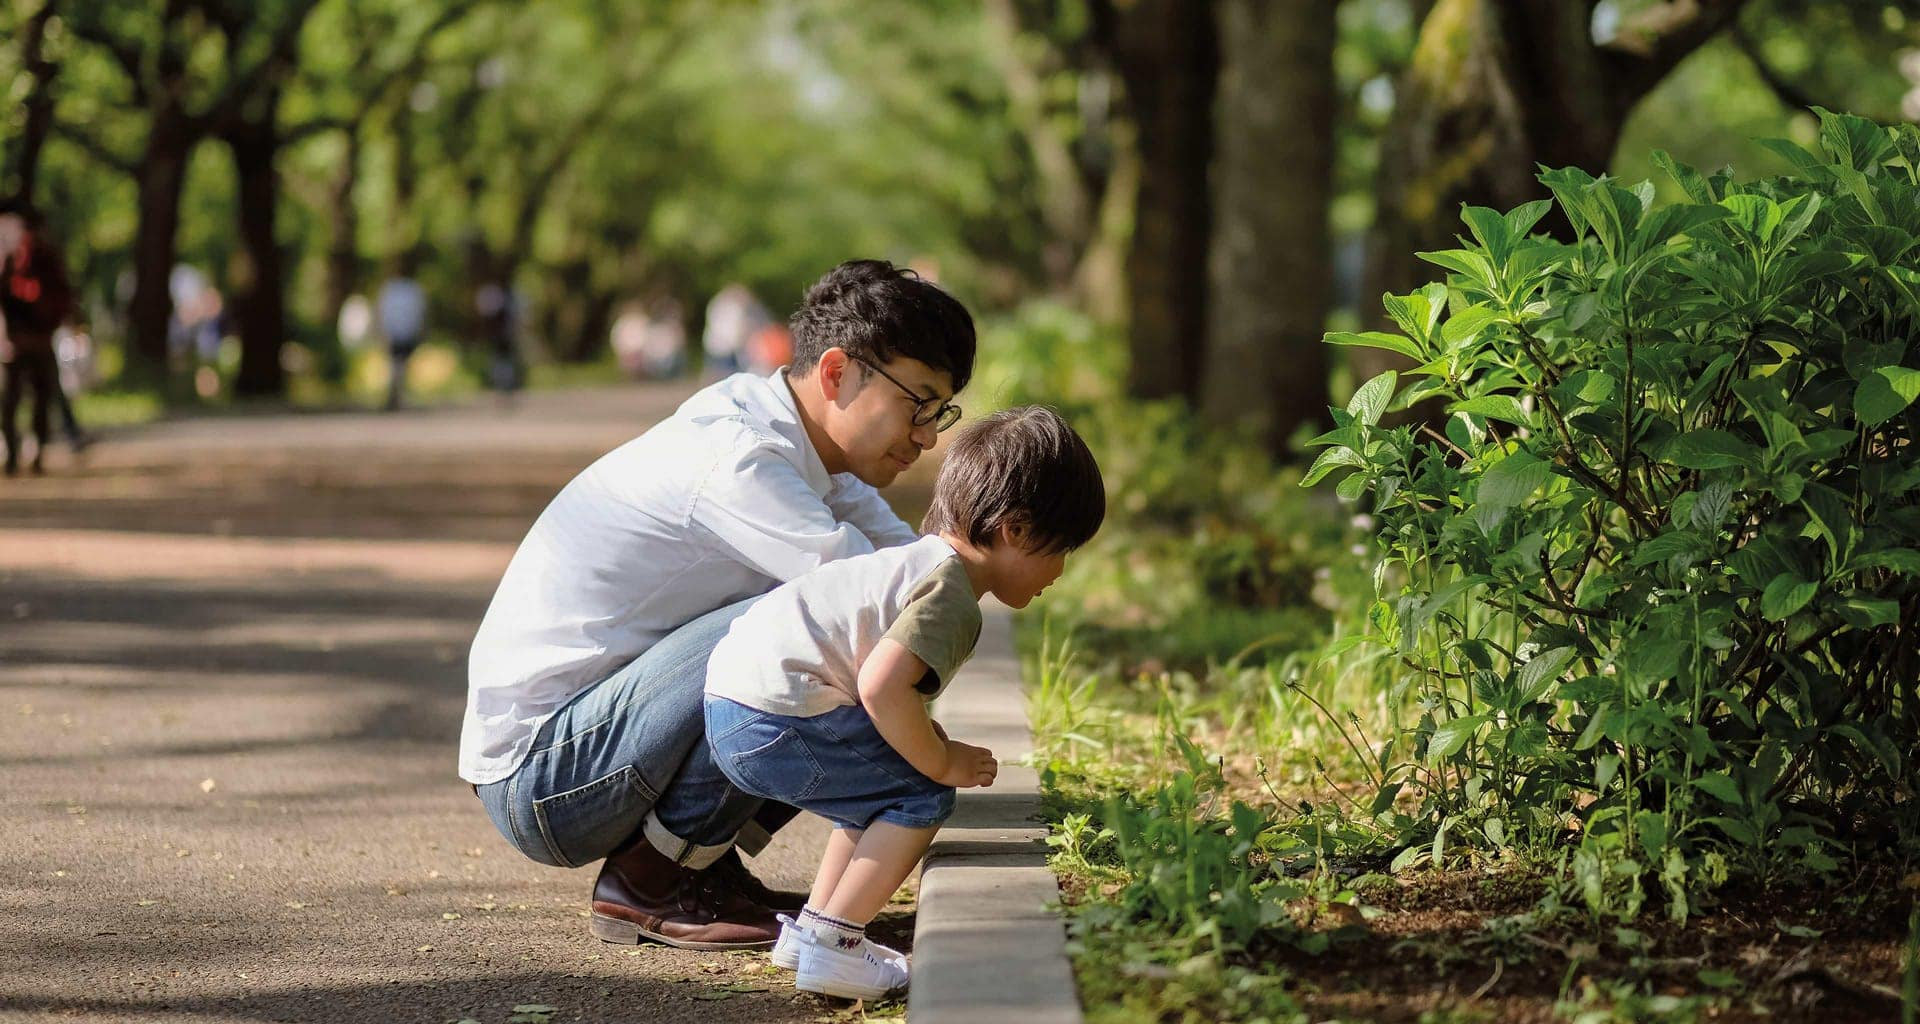 Father and son looking at plants in a park